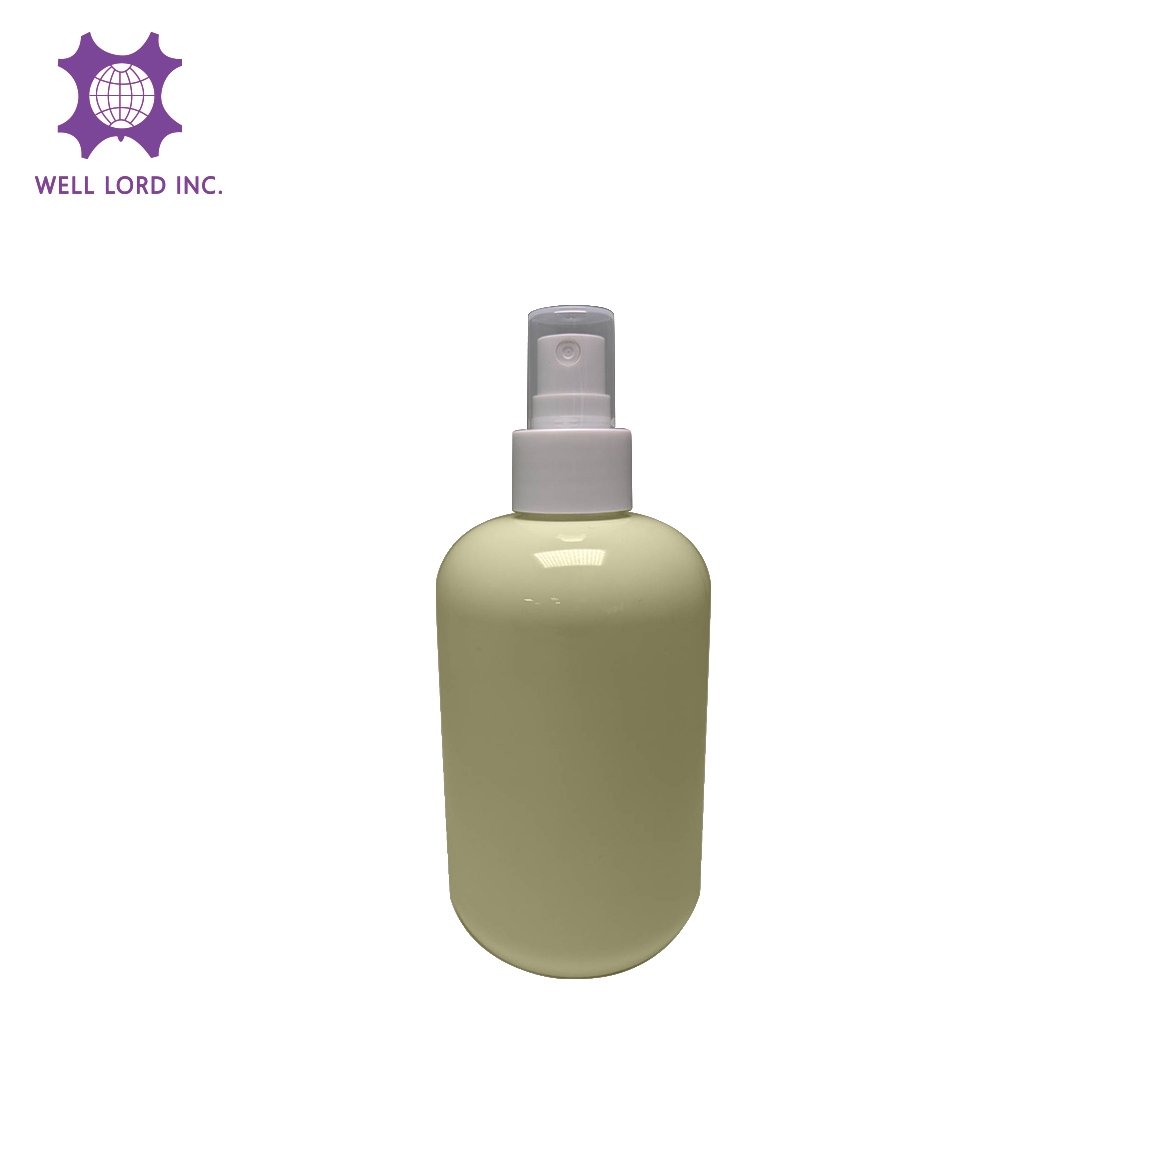 Promotional item custom made plastic bottles for essential oil 300ml empty large fine mist spray bottles